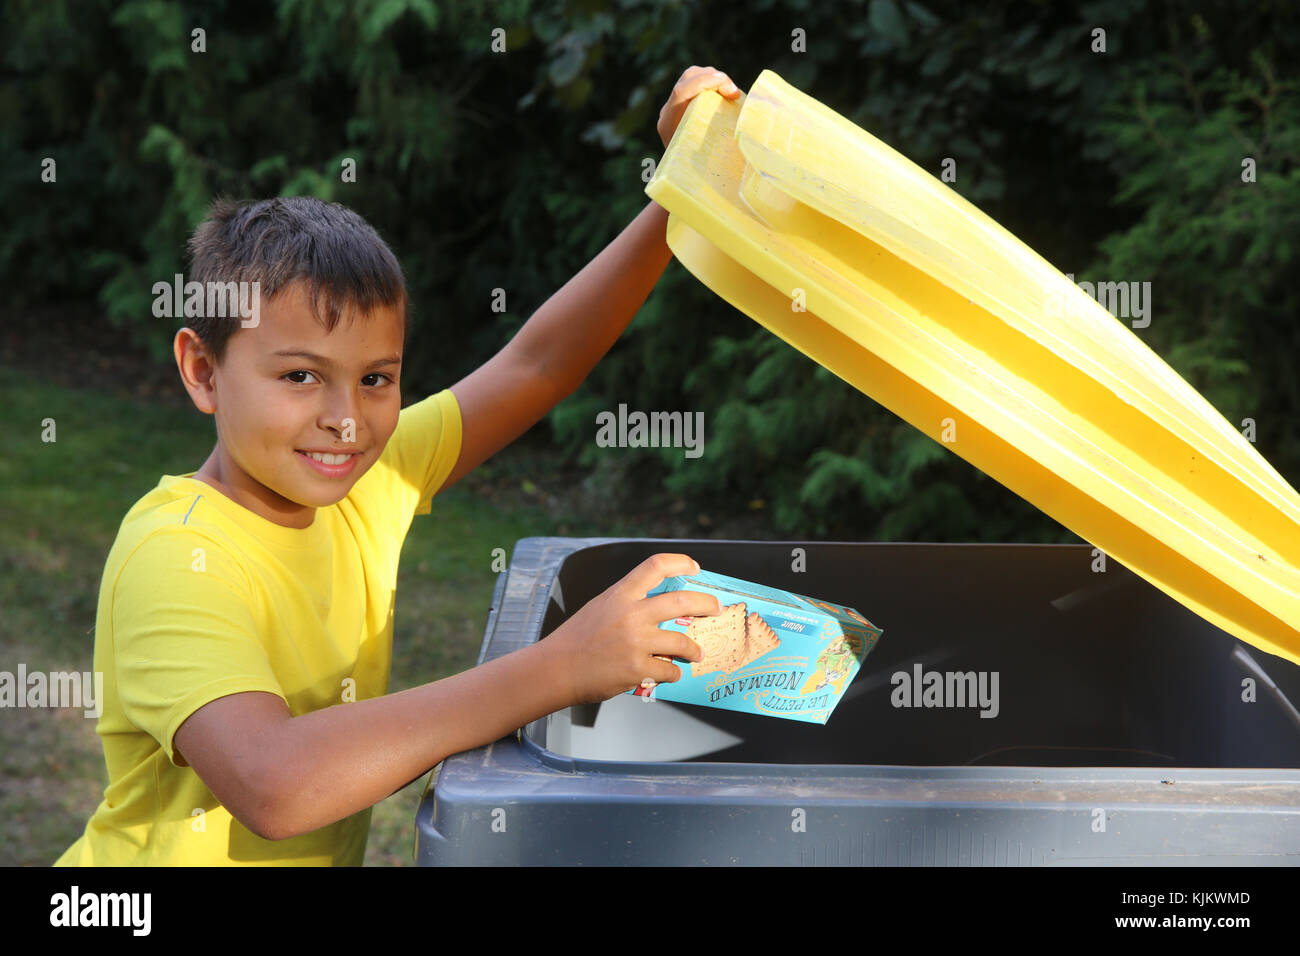 Boy throwing a box in a recycling trash can. France. Stock Photo